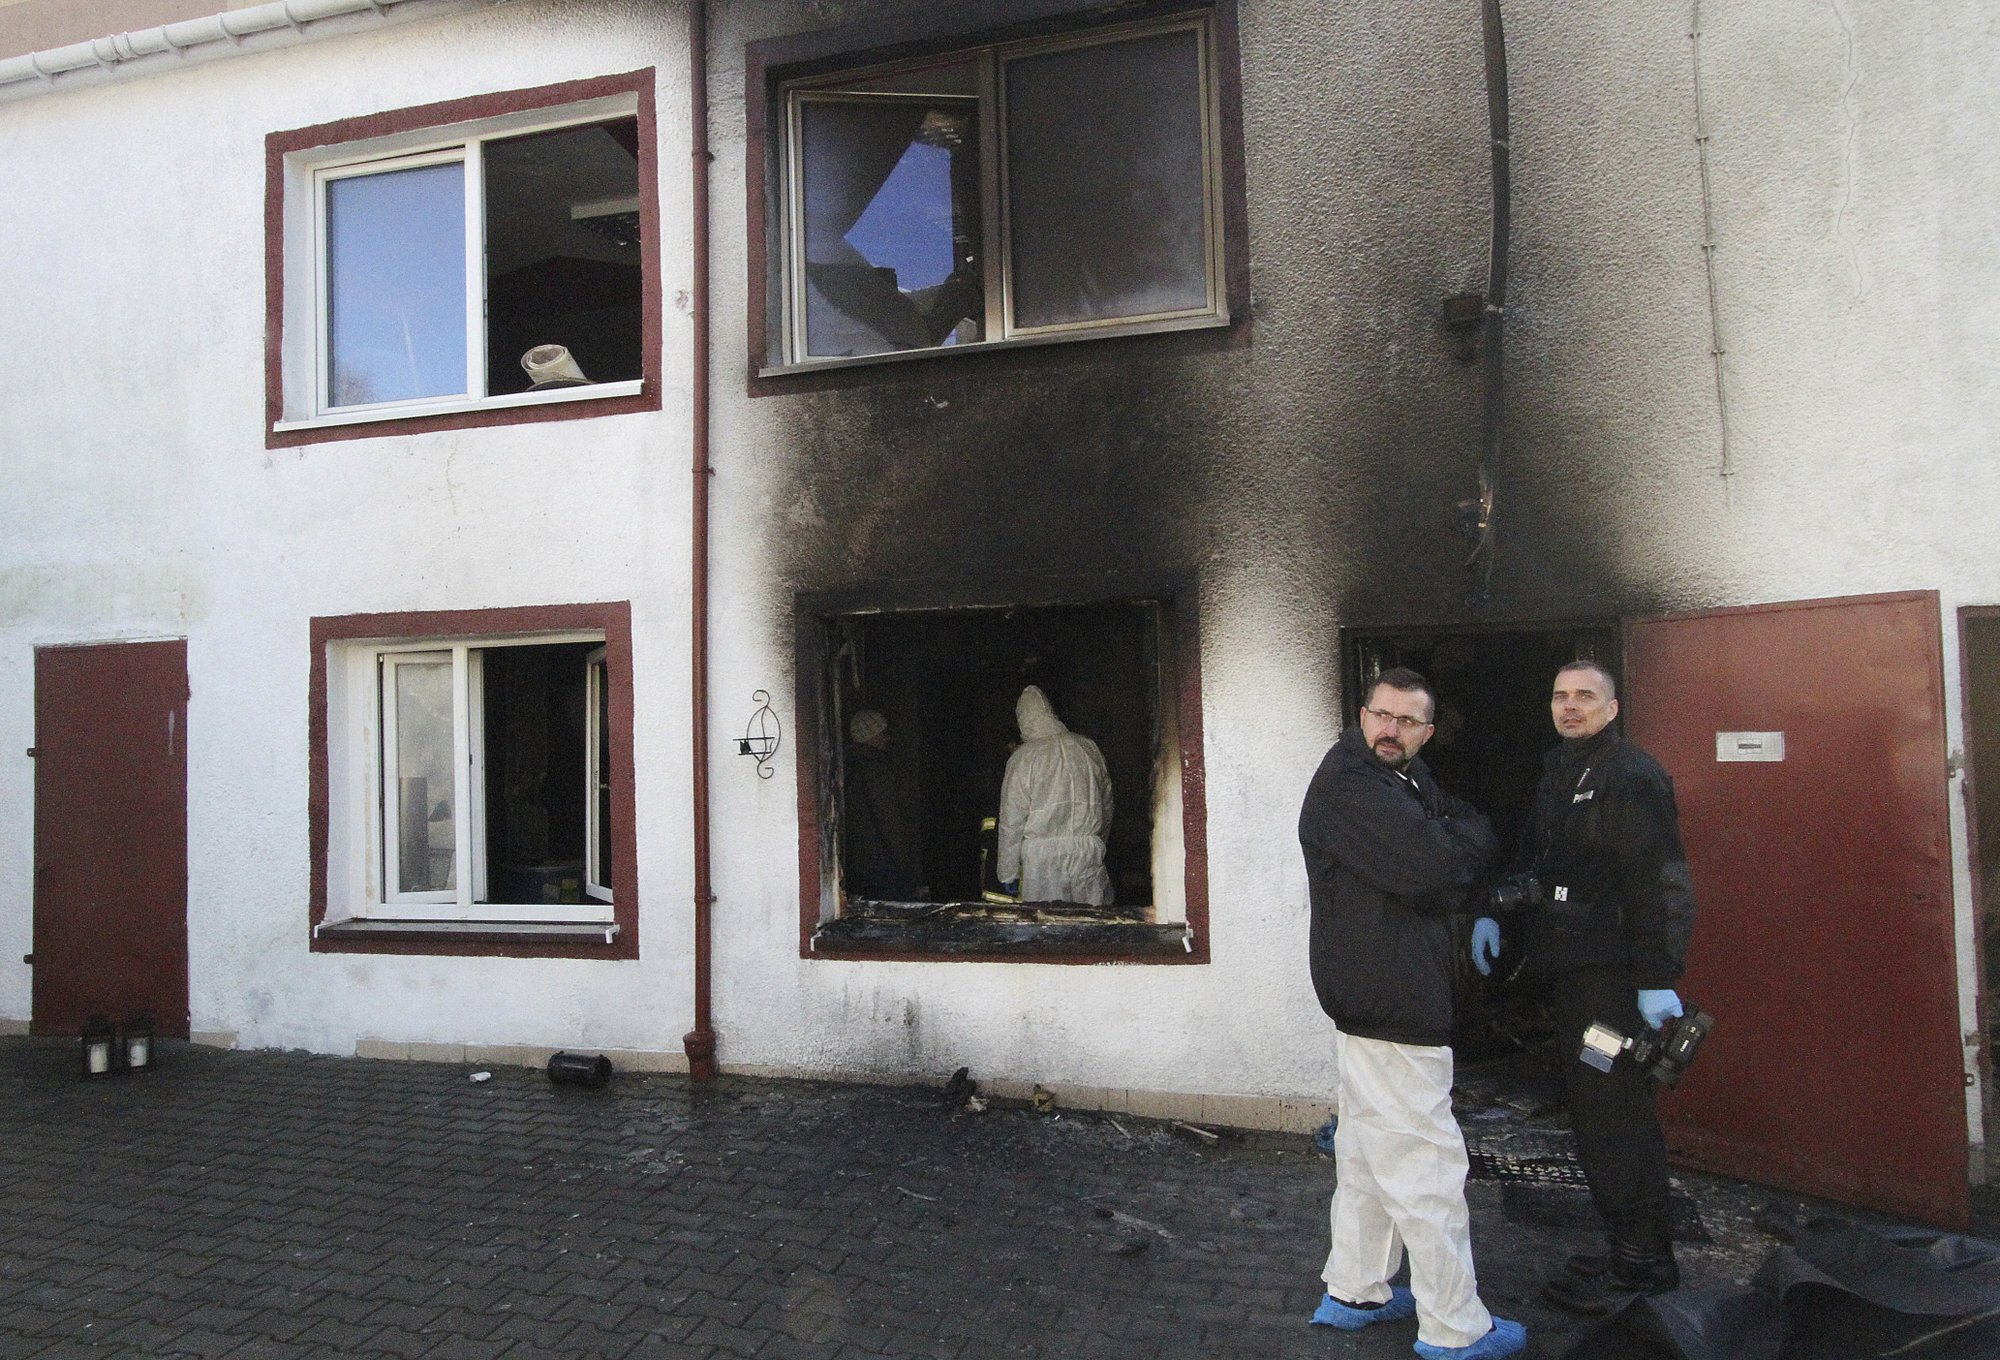 Forensic and other police experts examine the site of a fire in an Escape Room, in Koszalin, northern Poland, on Saturday, Jan. 5, 2019. Photo: AP